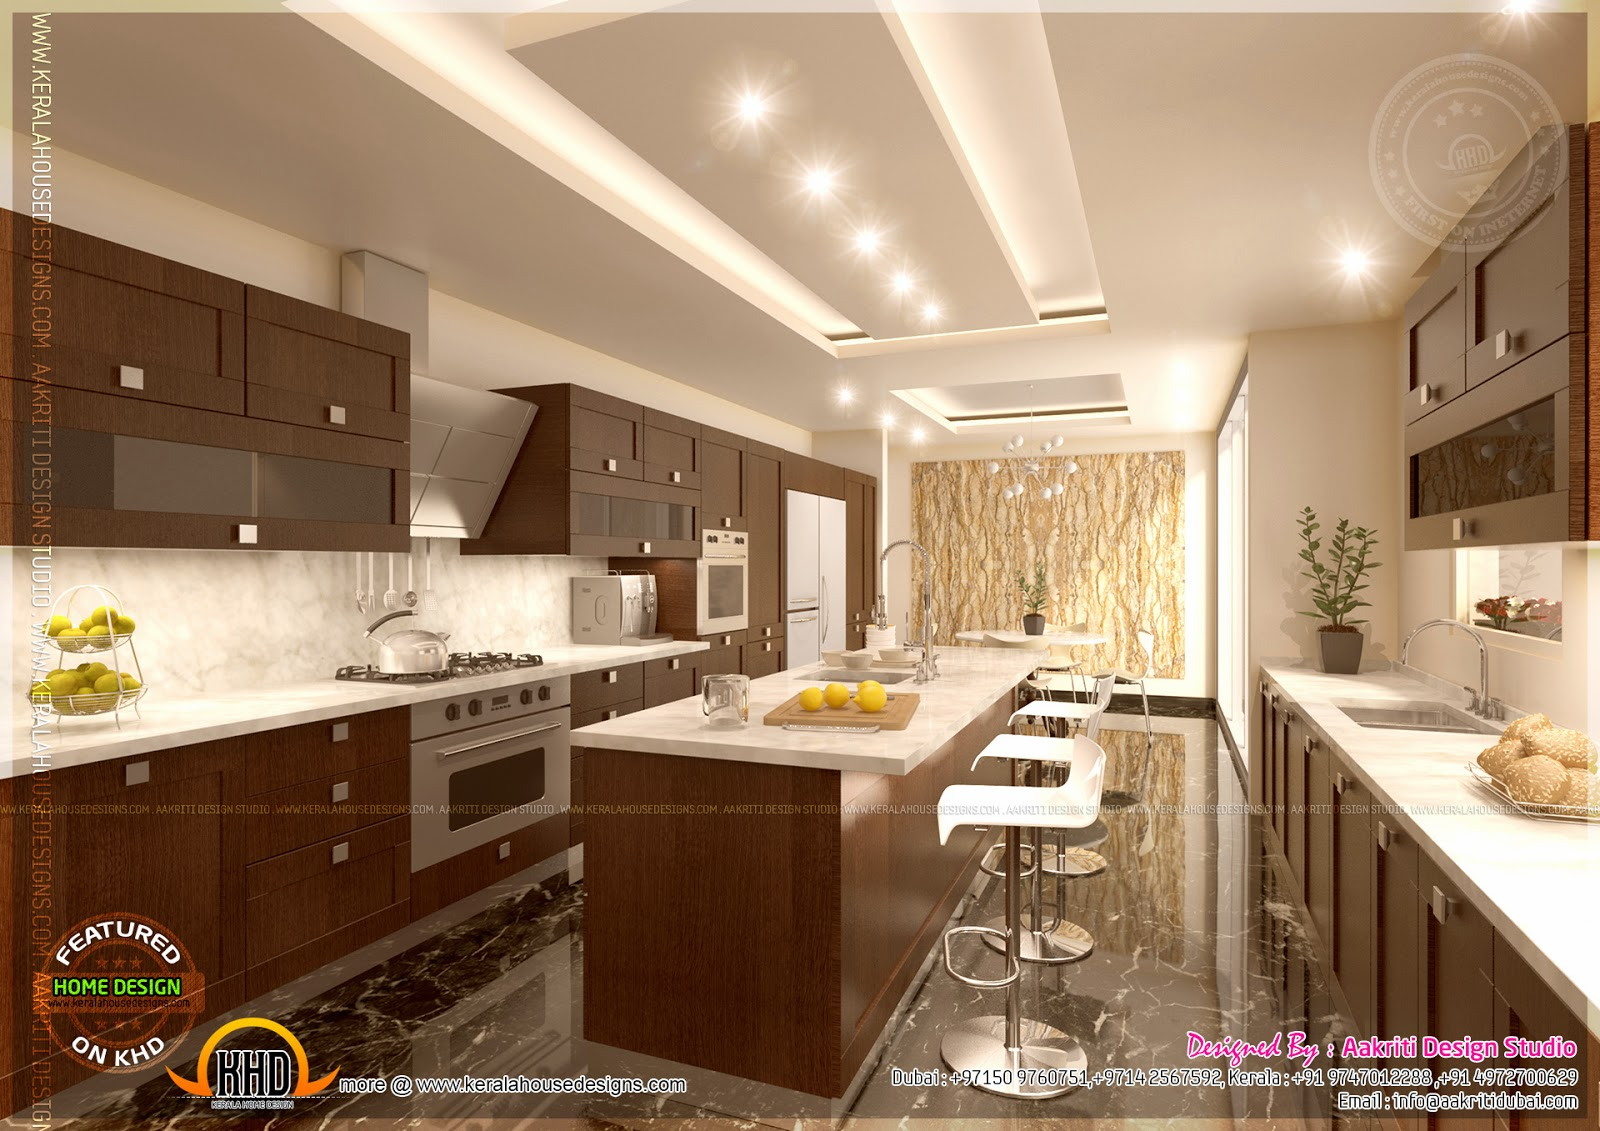 Kitchen designs by aakriti design studio kerala home for House and home kitchen designs